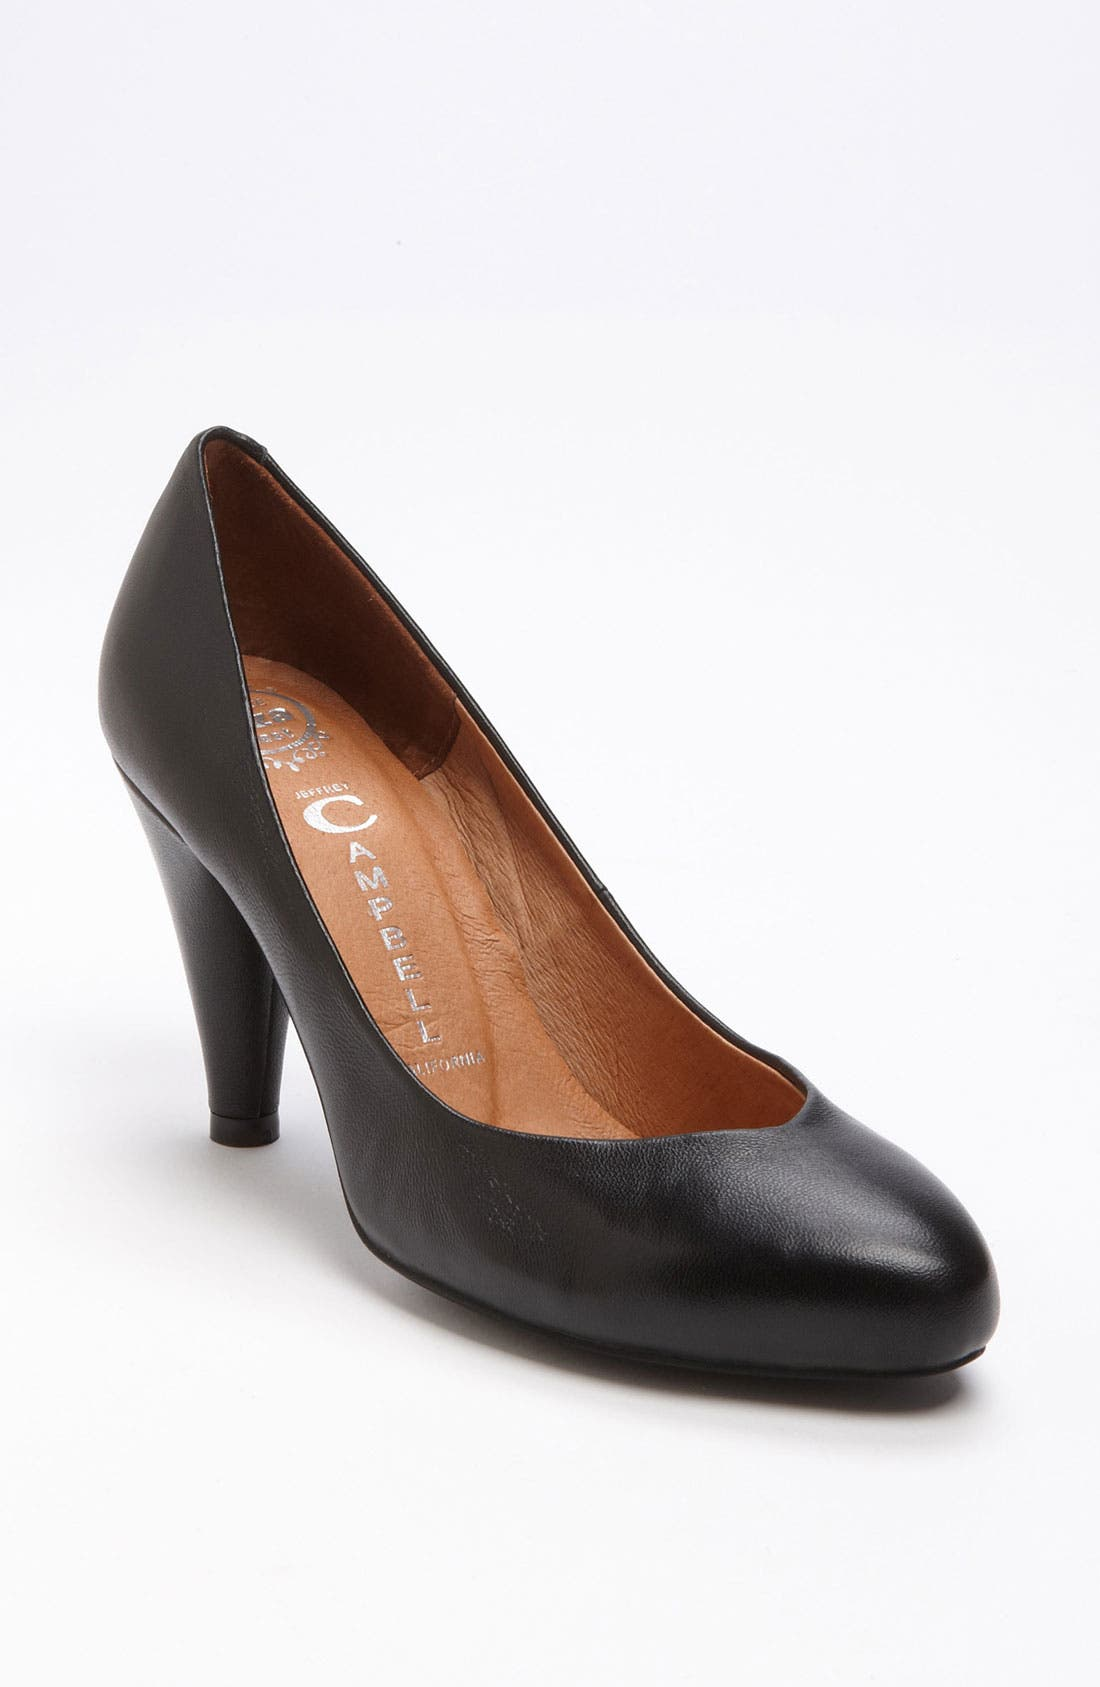 Main Image - Jeffrey Campbell 'Lane' Pump